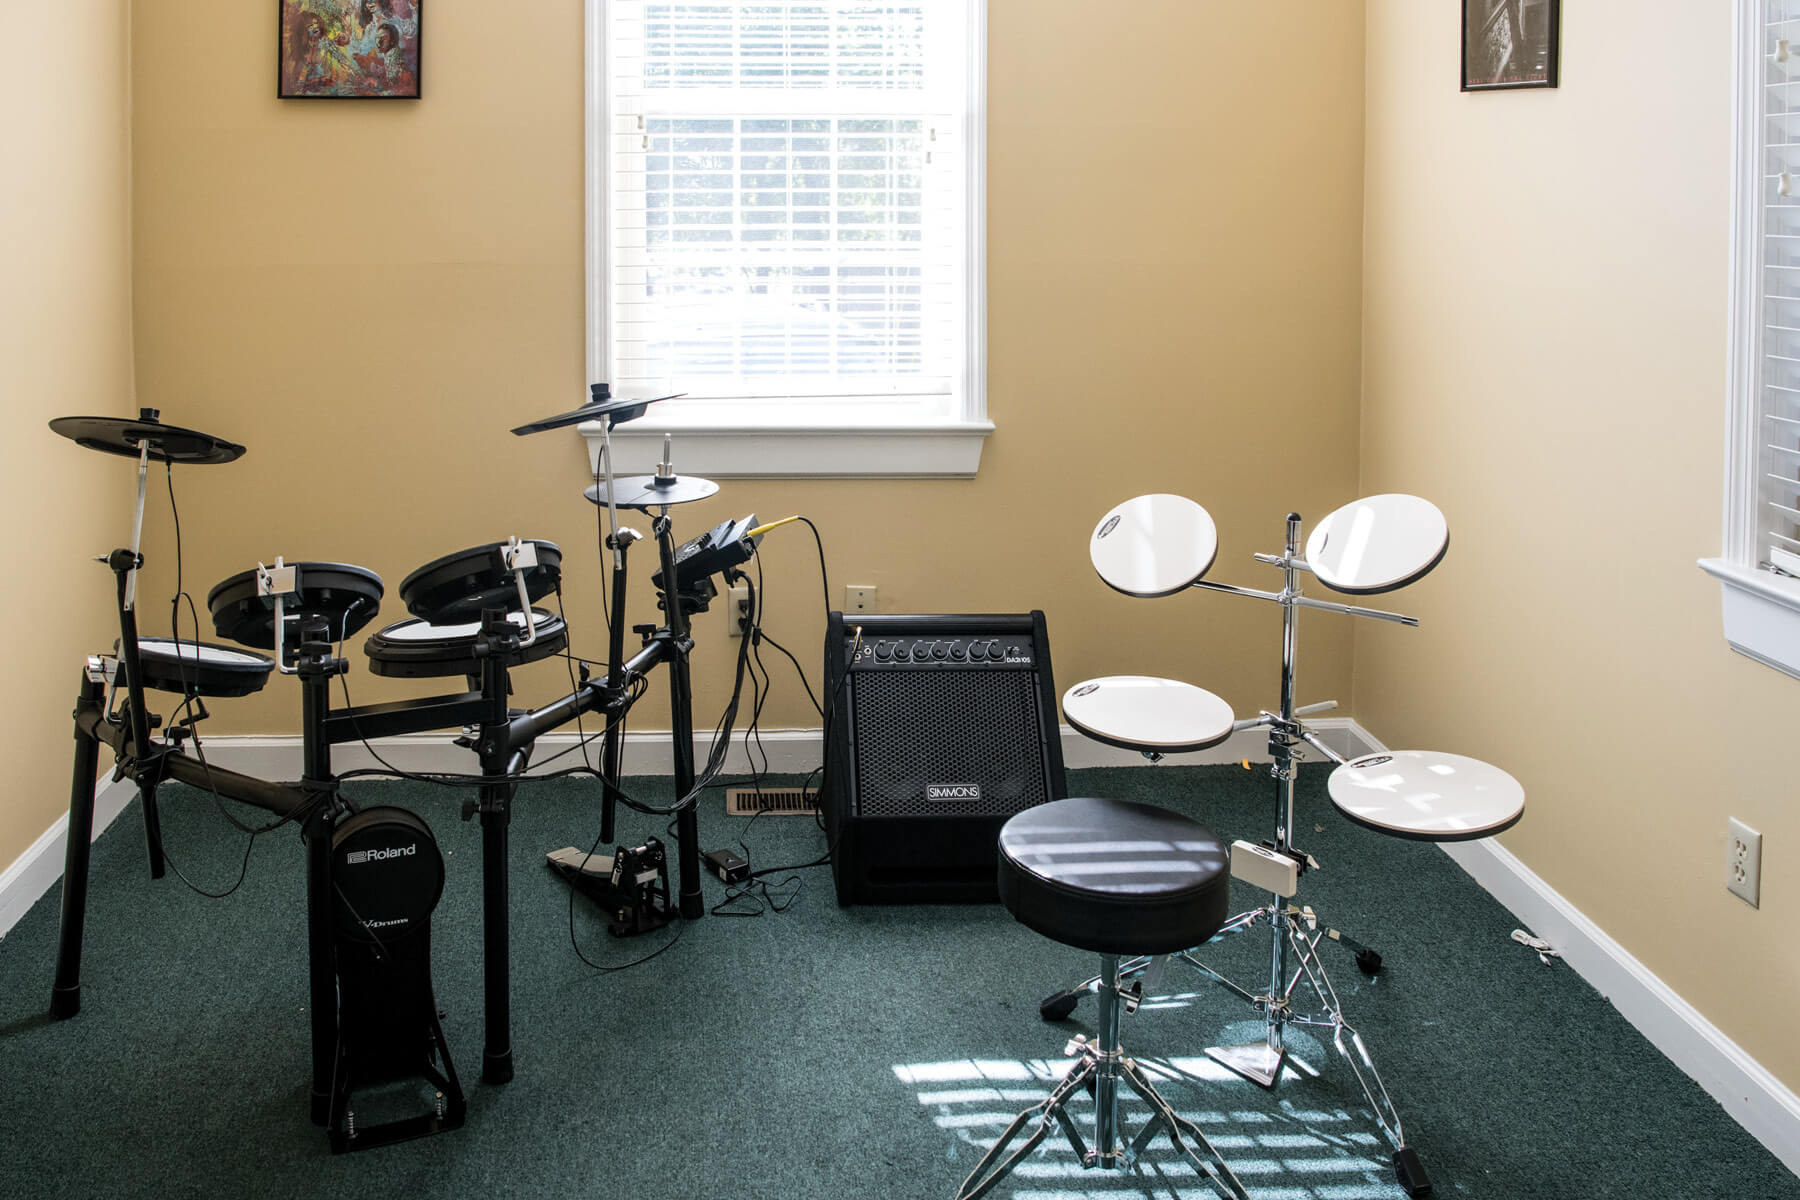 Irmo Music Academy lesson room with drum kits.